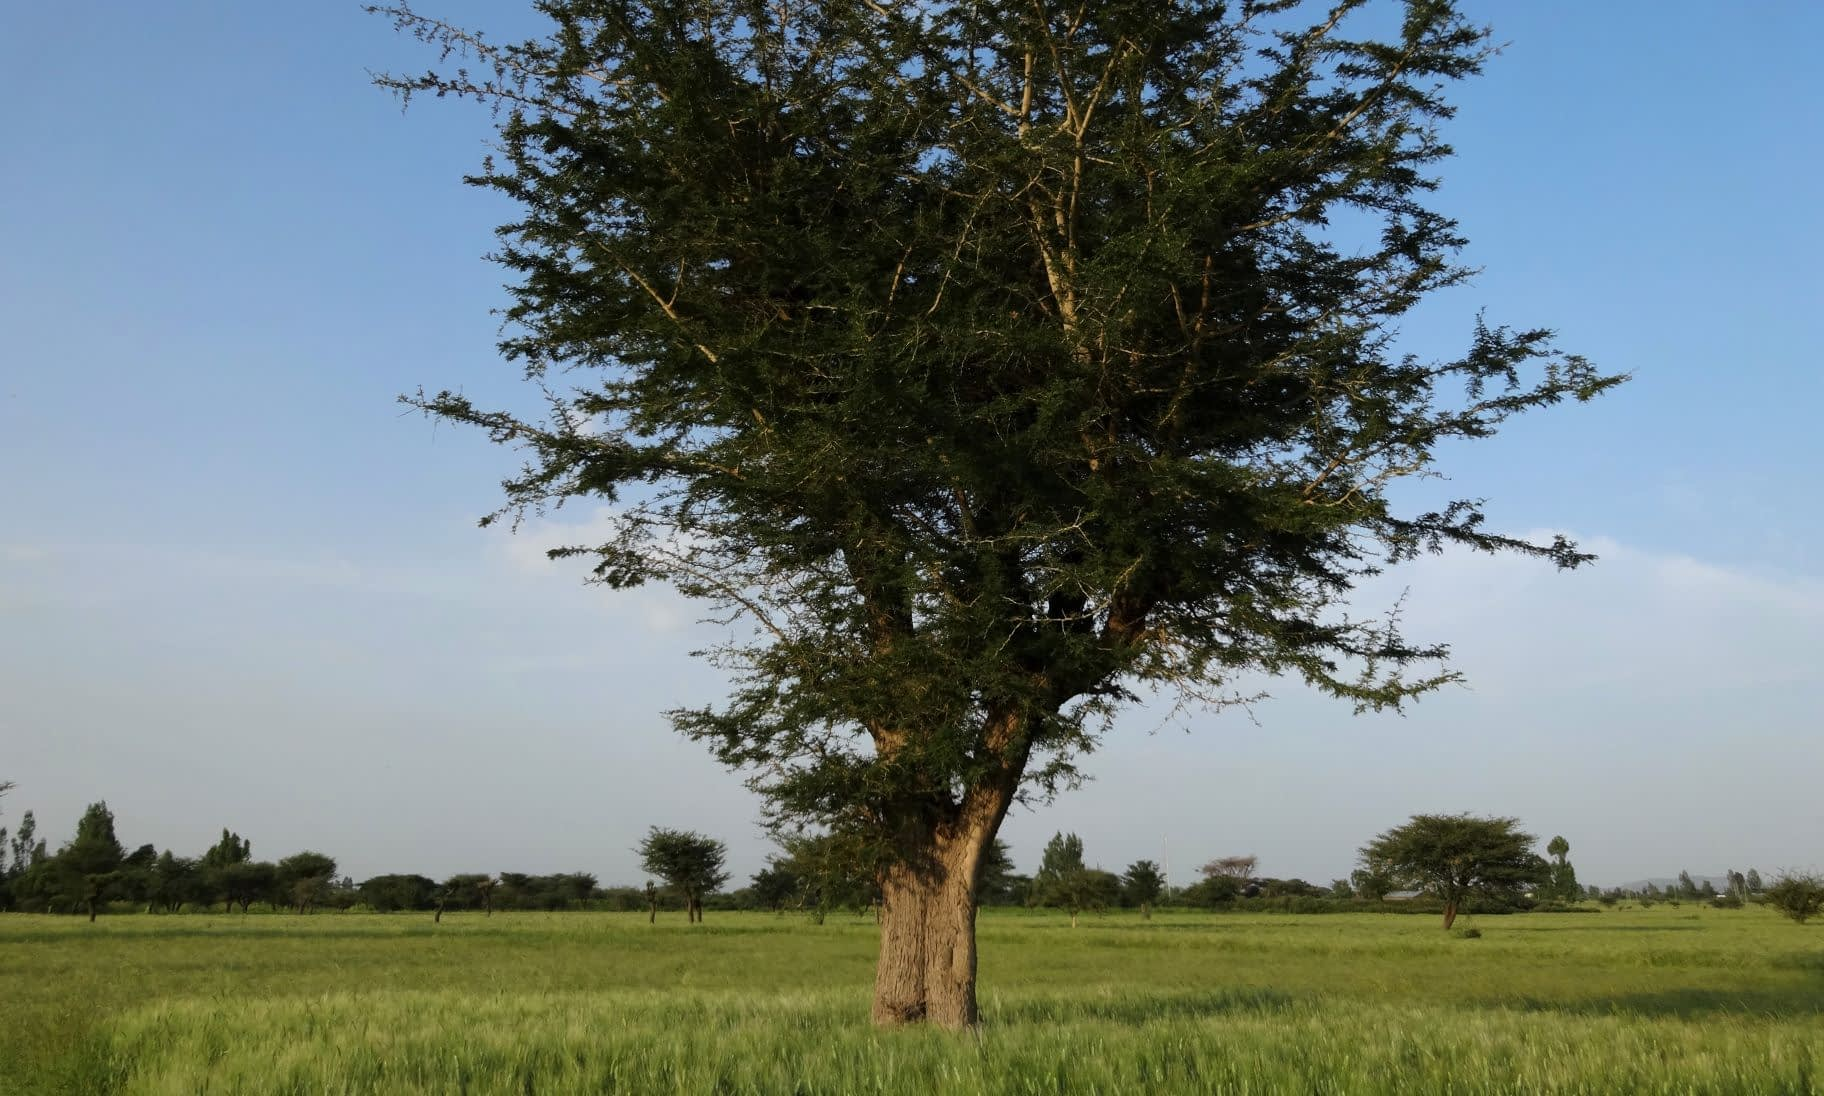 In Ethiopia, scattered trees in crop fields have been practiced for centuries. (Photo: Tesfaye Shiferaw /CIMMYT)